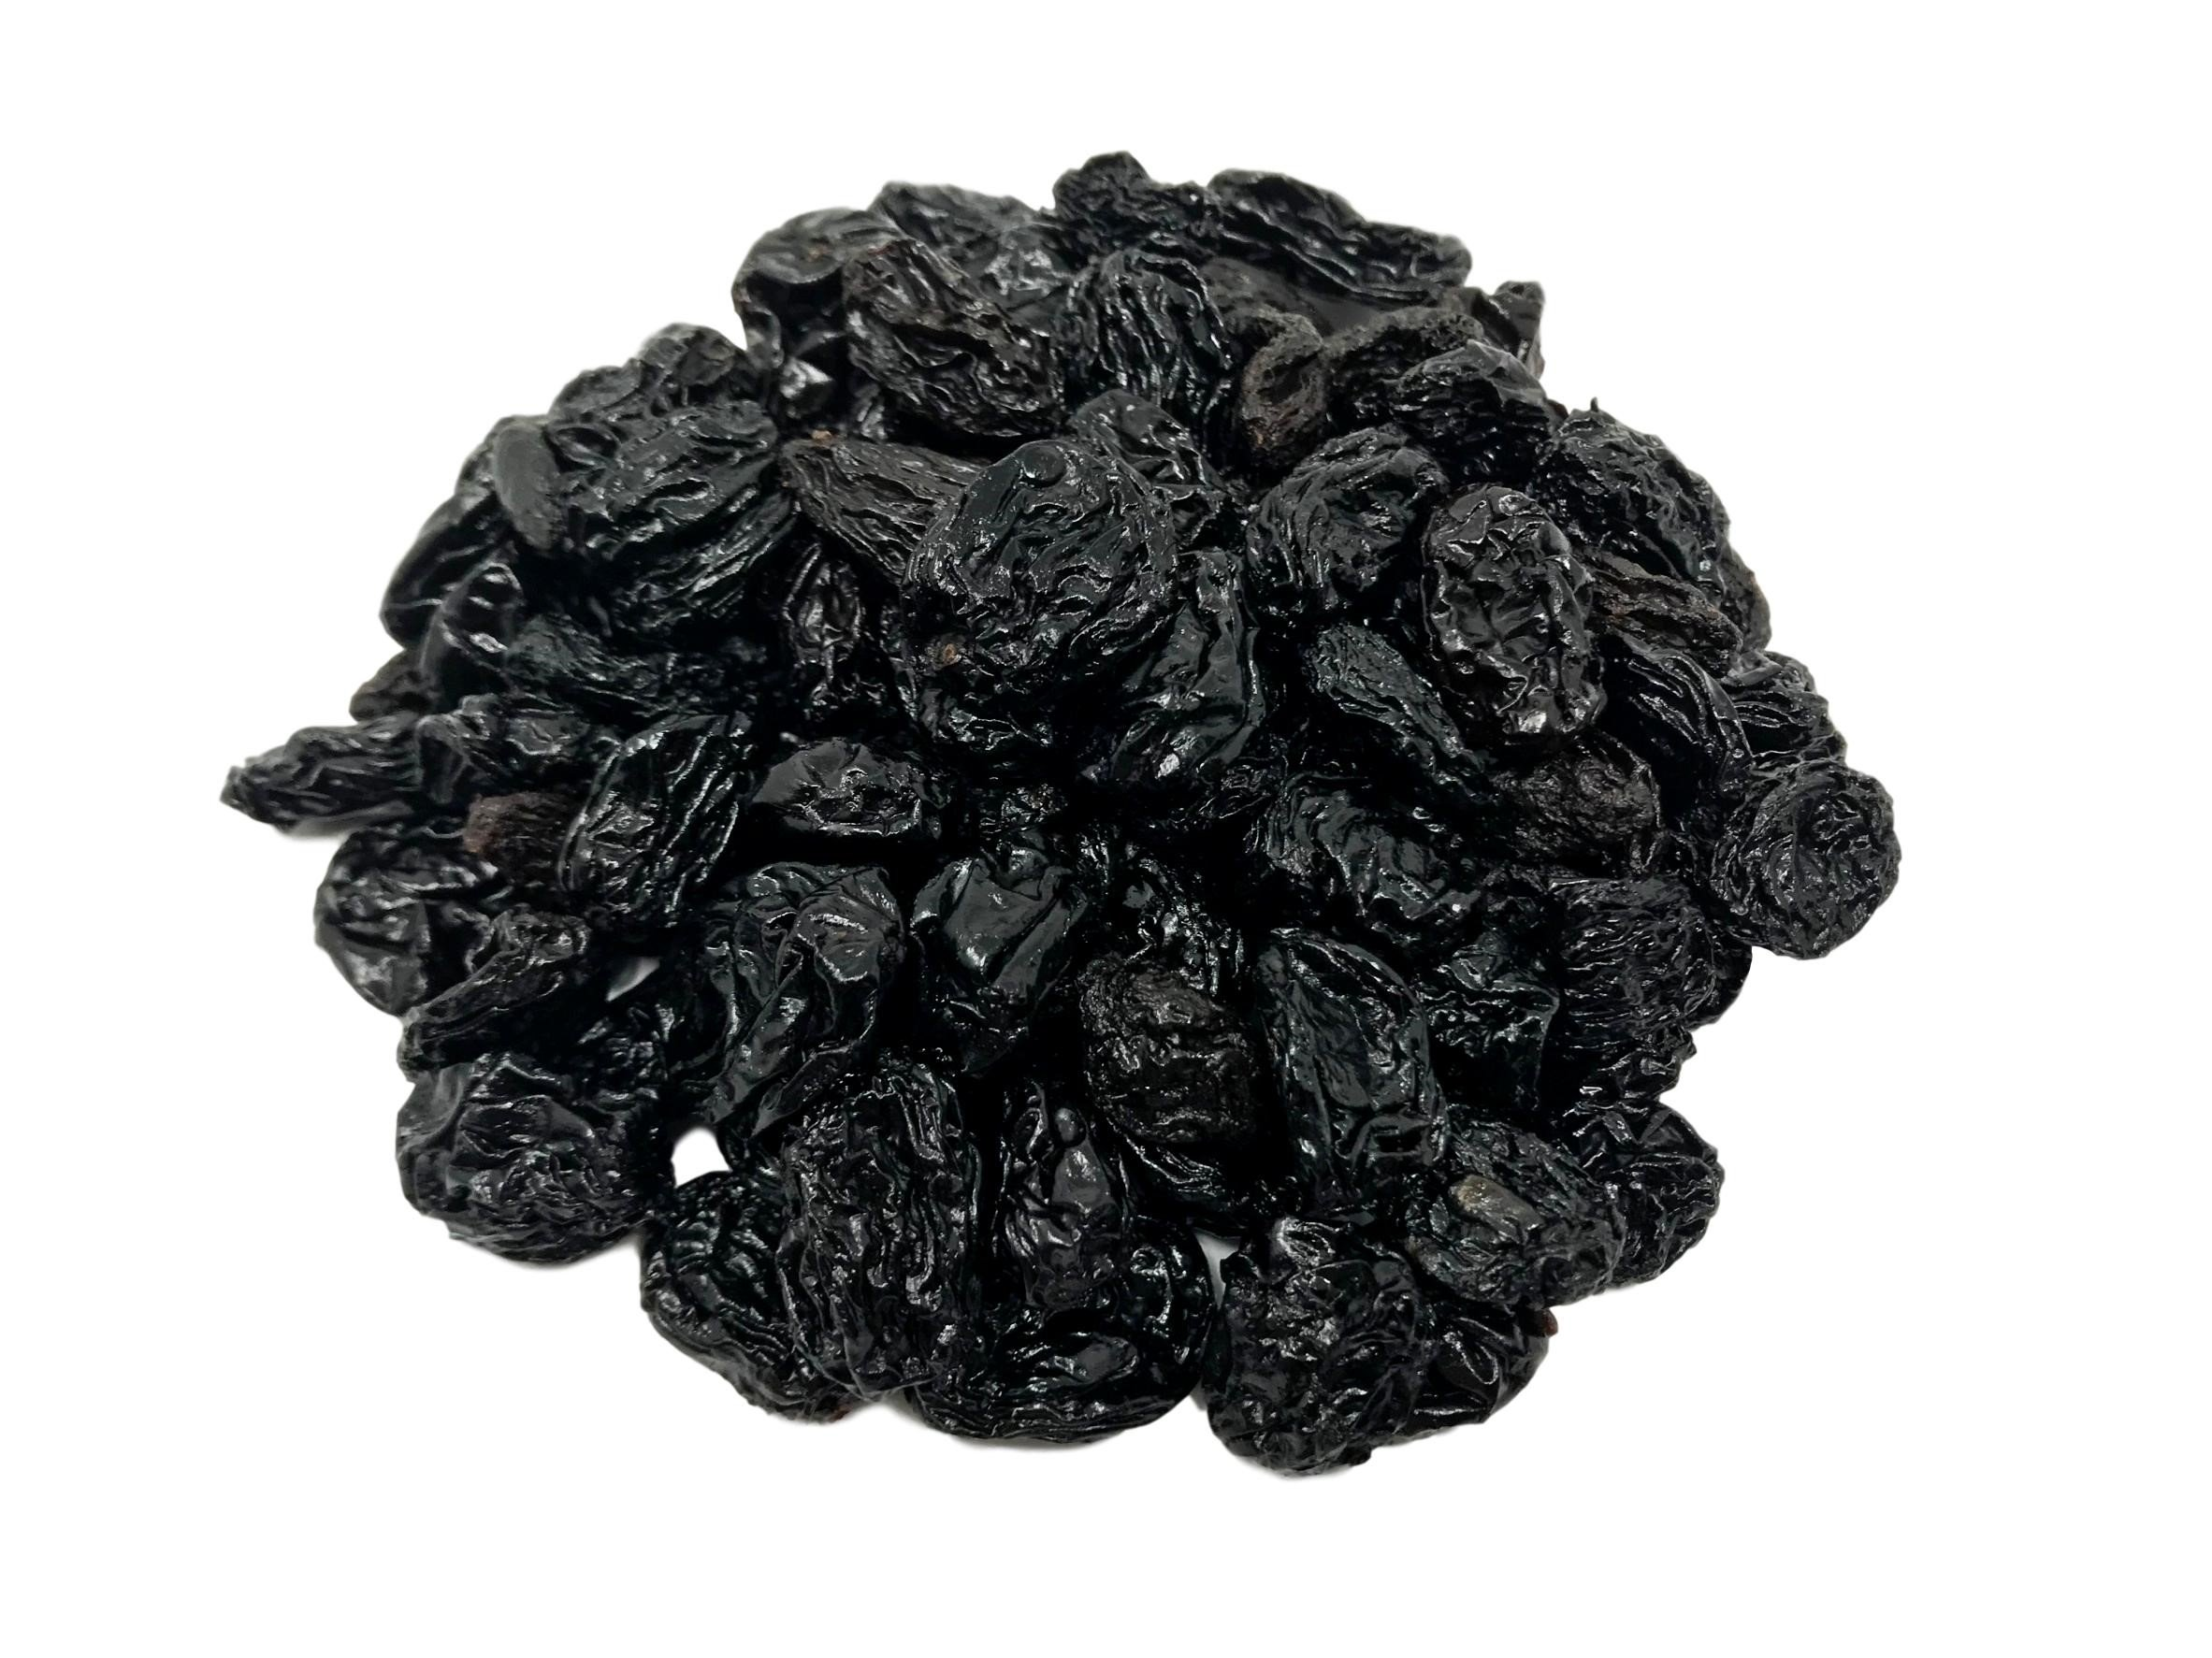 NUTS U.S. - California Black Raisins, Seedless, Unsulphured, Natural!!! (2 LBS) by NUTS - U.S. - HEALTH IN EVERY BITE !